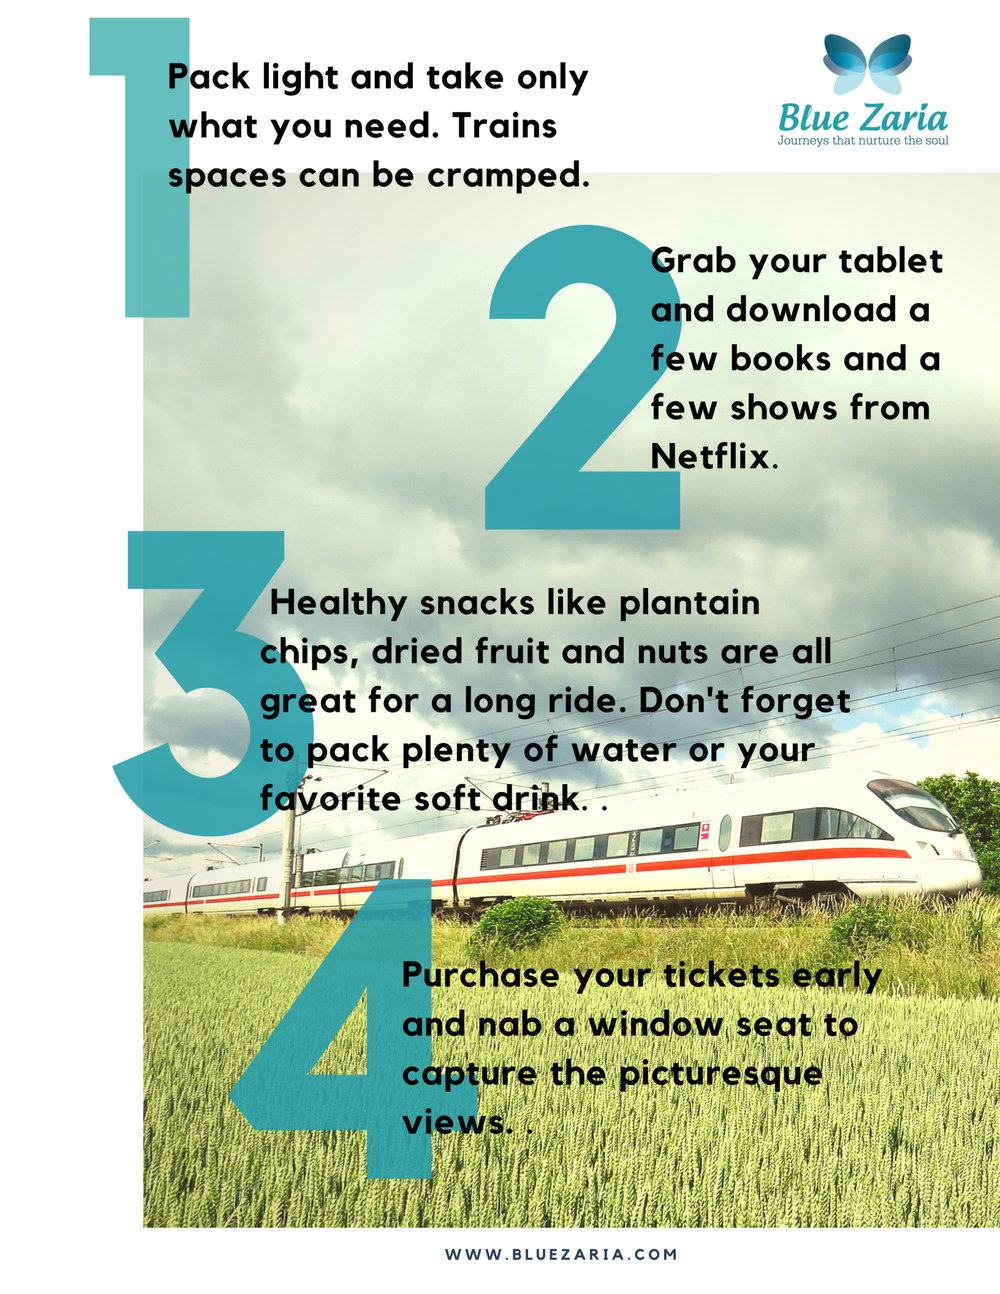 Tips for a mindful train trip 2.jpg